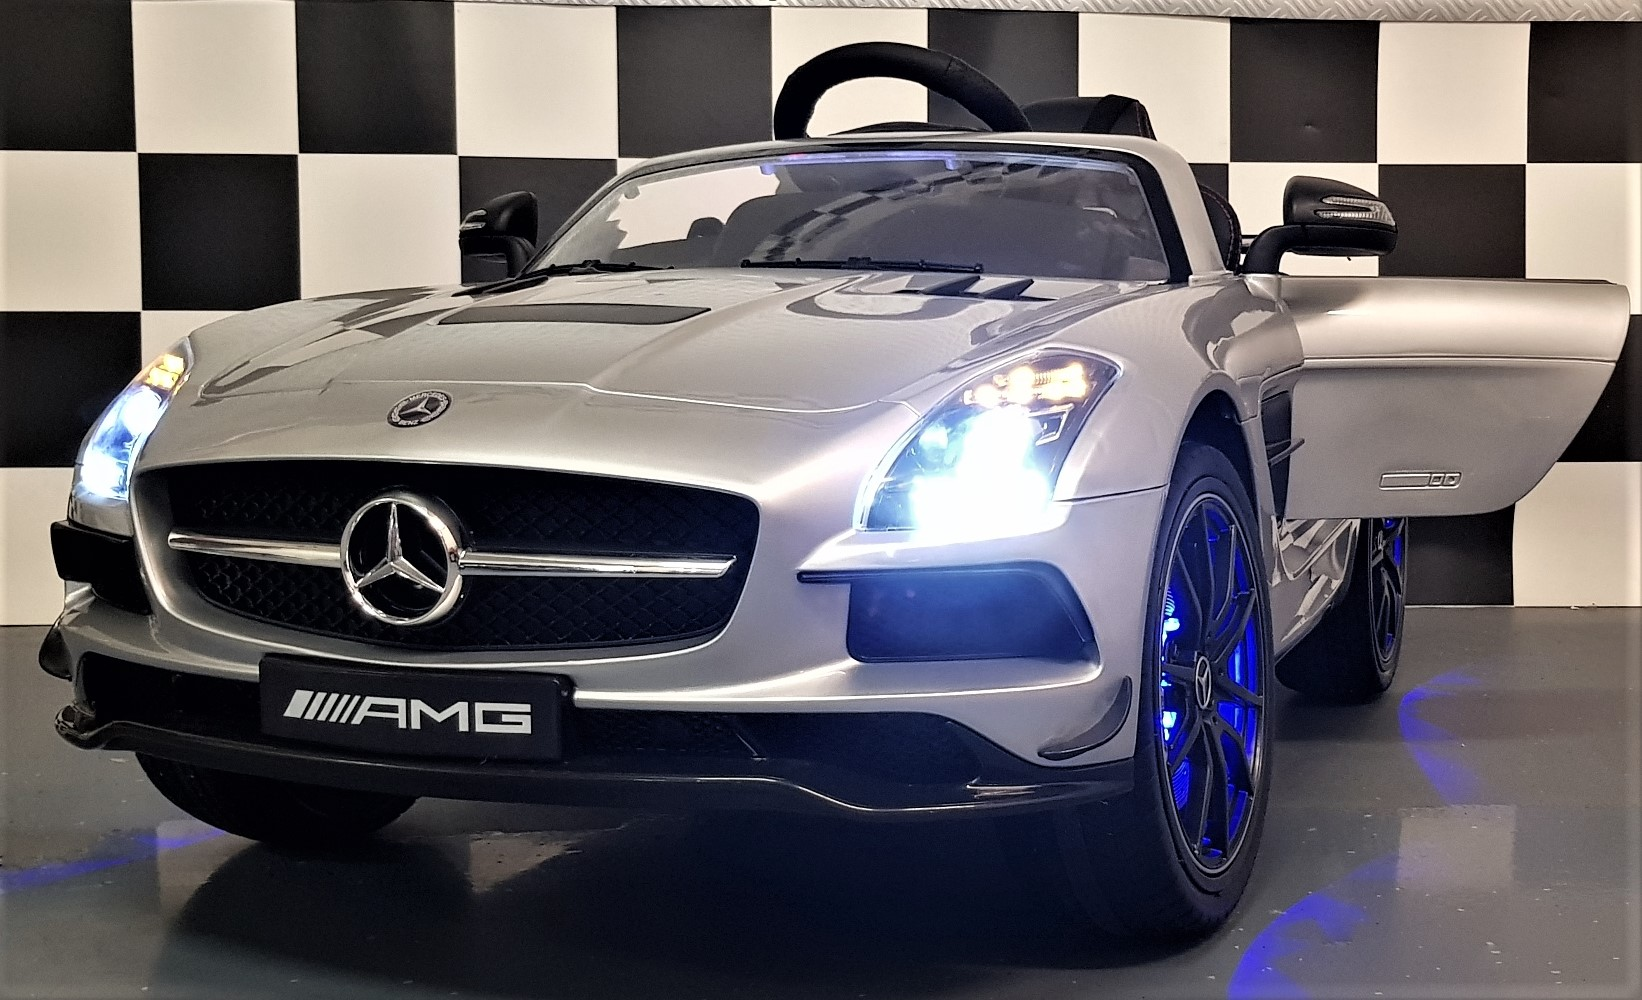 Mercedes SLS AMG speelgoed auto 12V 2.4G RC  Mp4 TV scherm